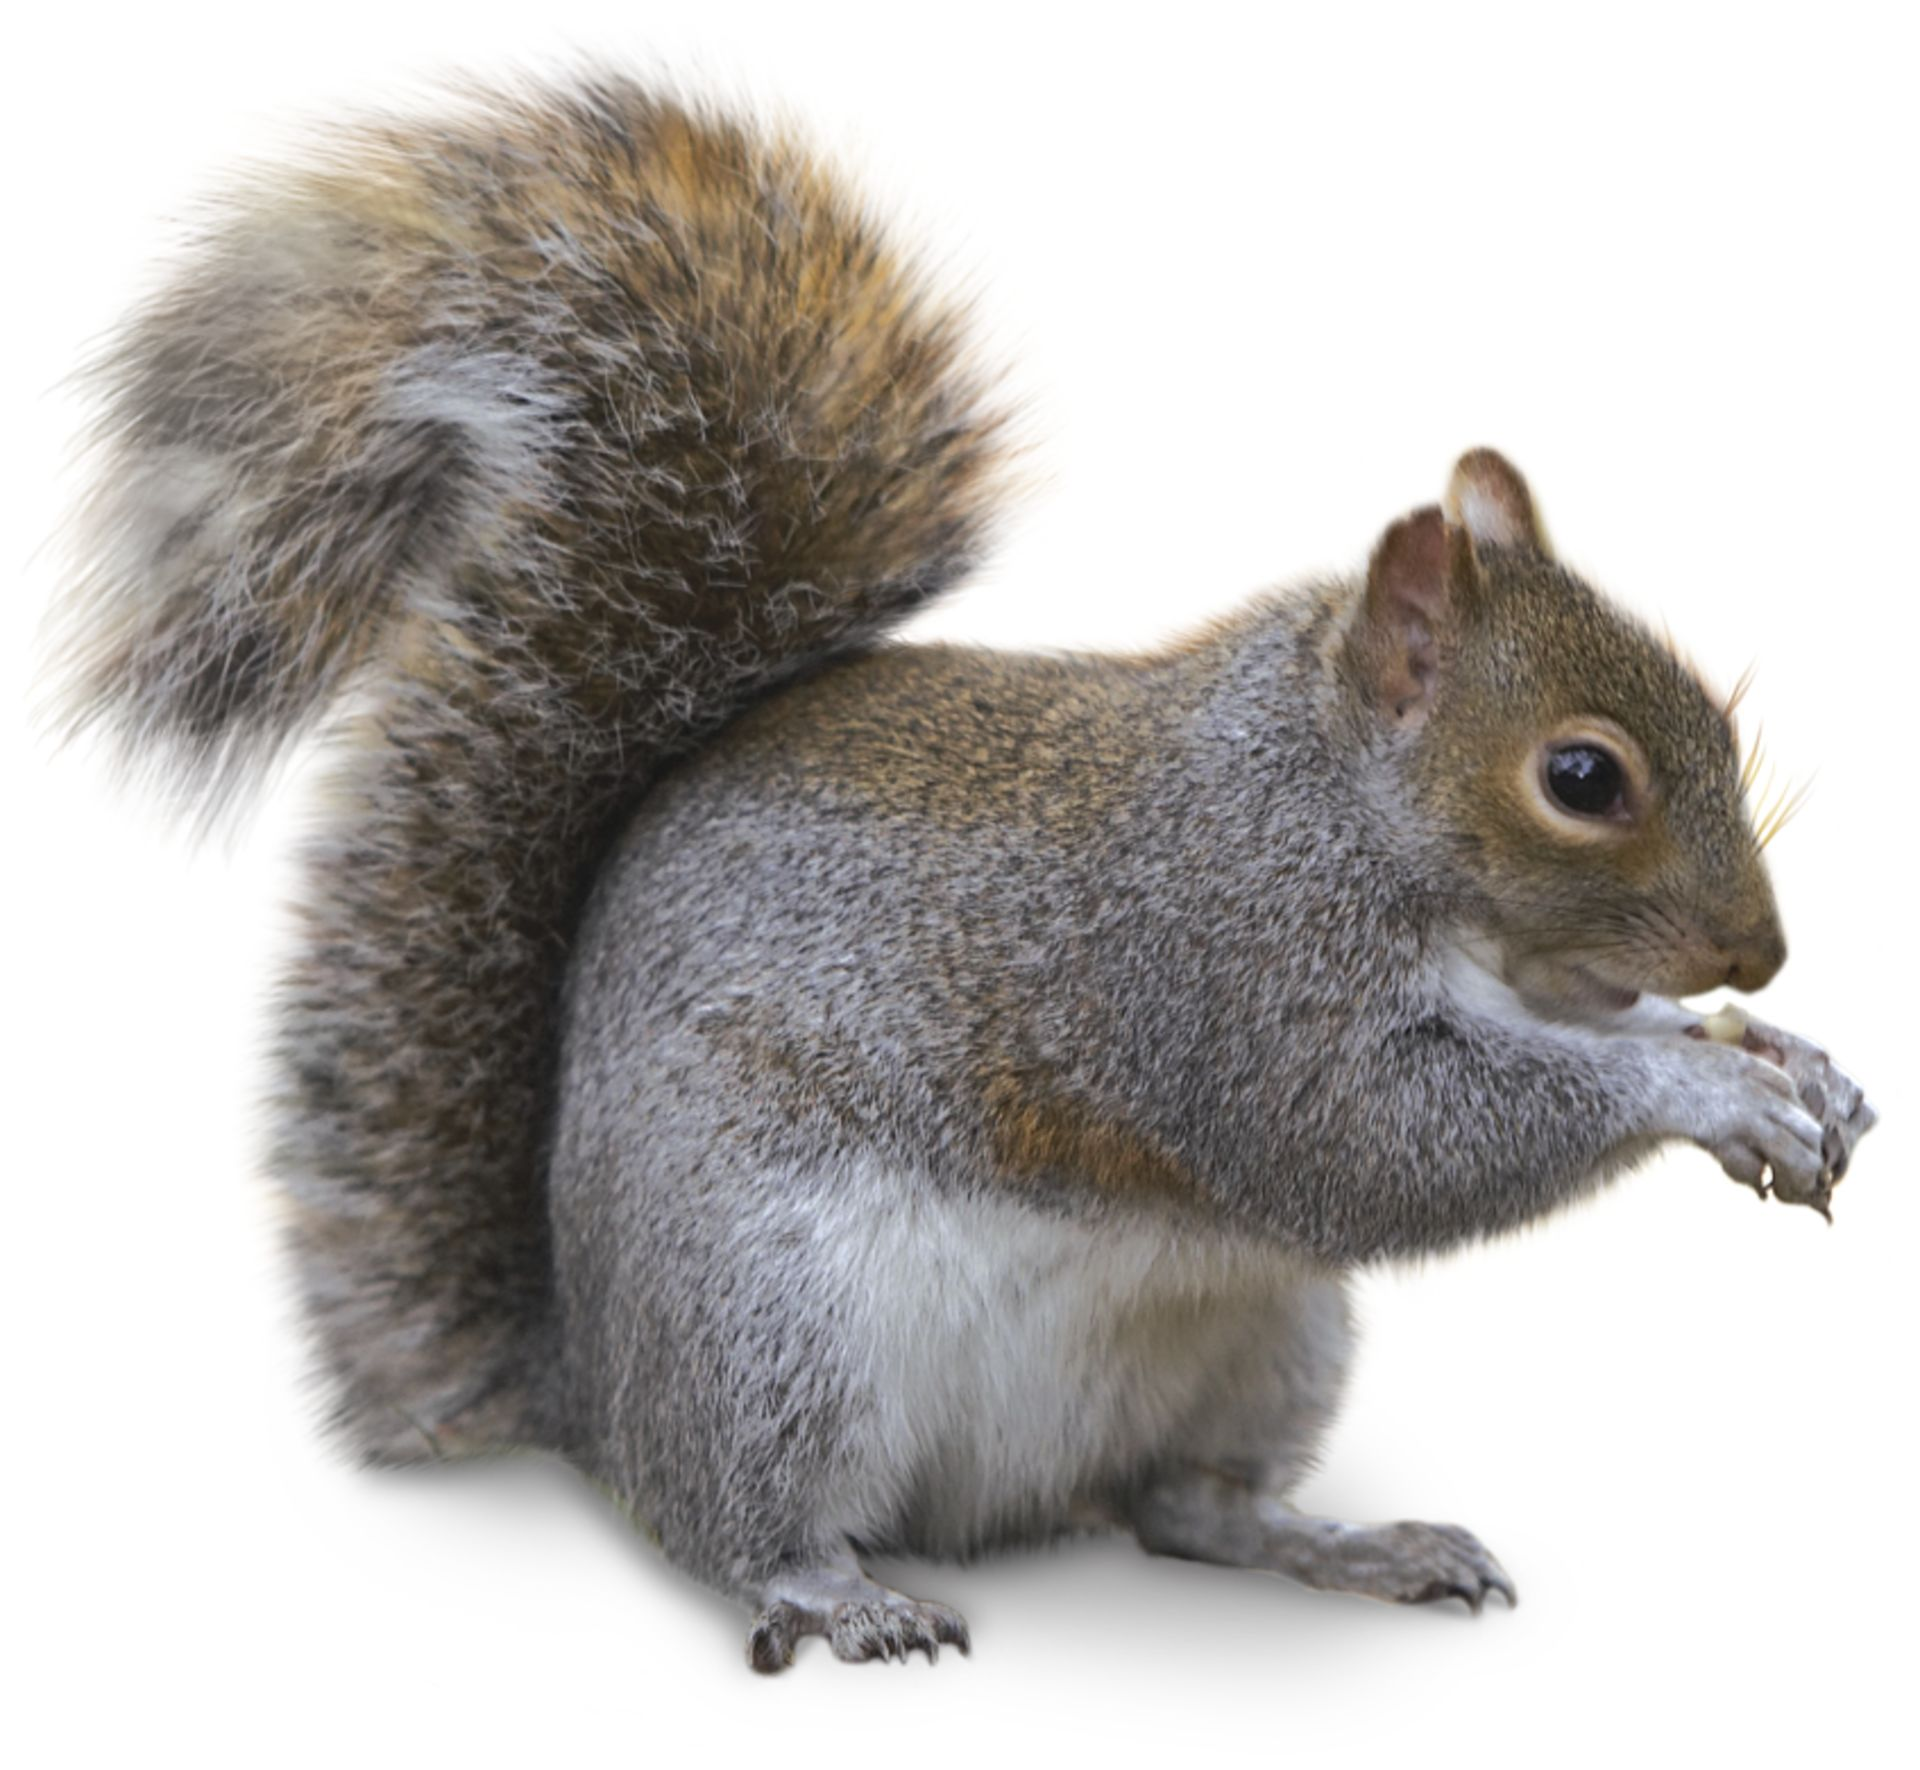 tail - Pictures Of Squirrels